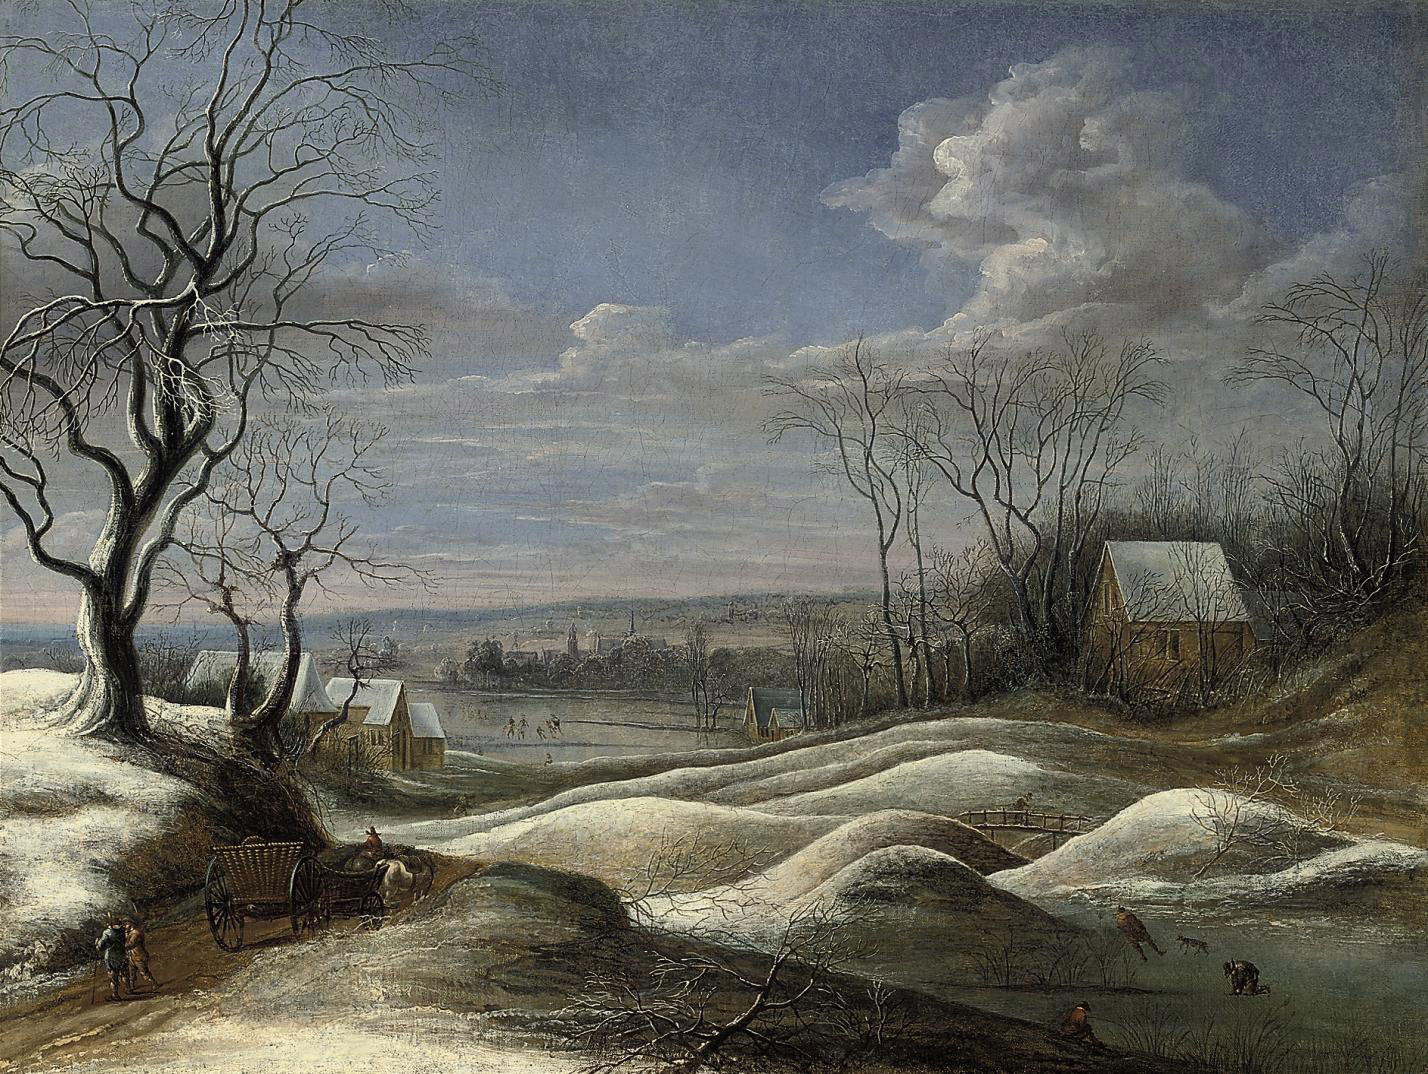 A winter landscape with travellers on a path and figures skating on a frozen lake beyond